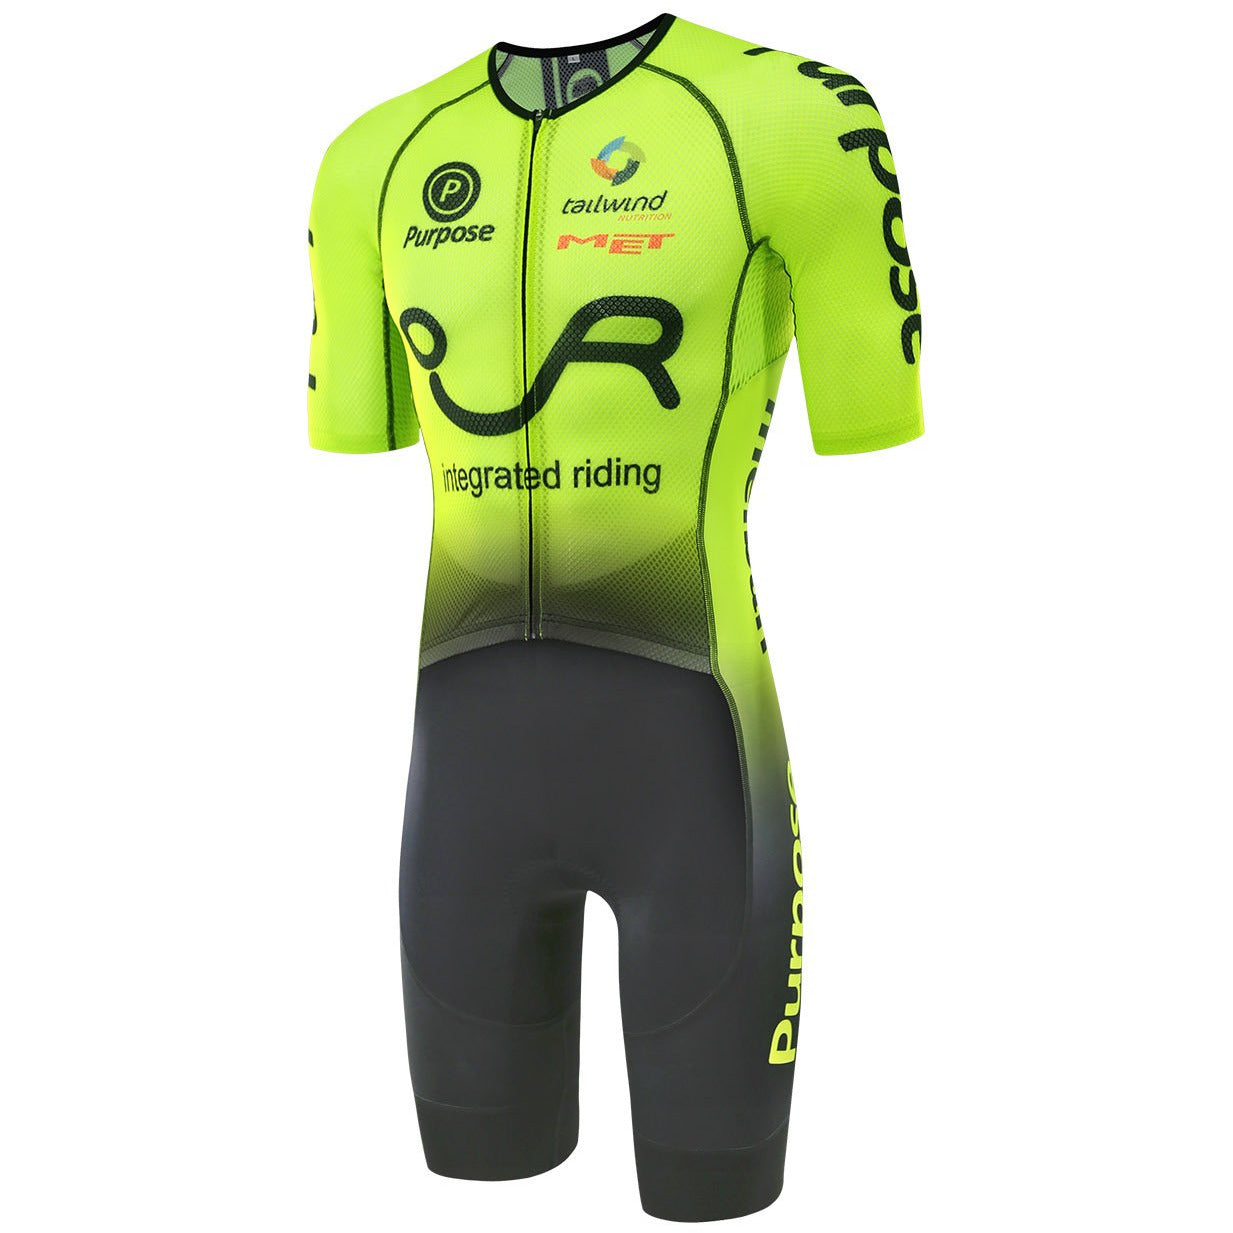 Purpose IR Tri Club Kit Pro/Performance Mesh Tri Suit